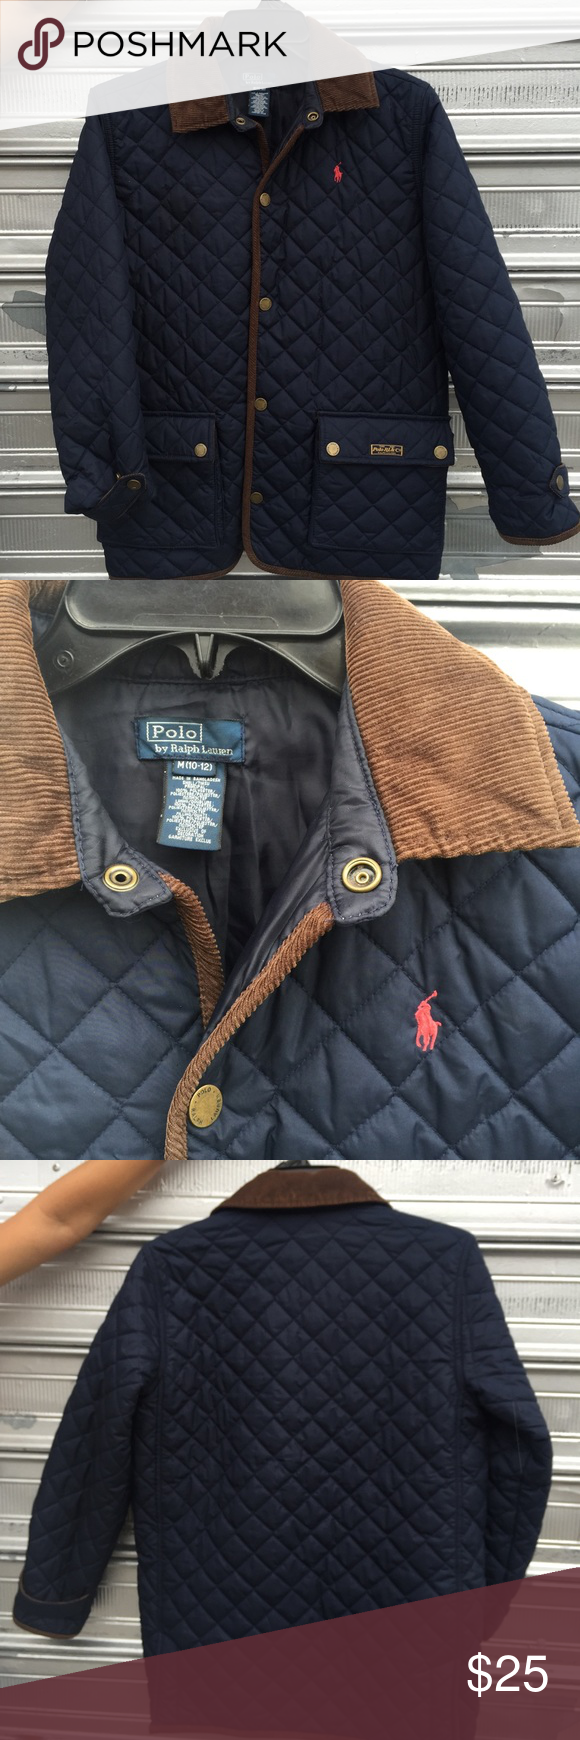 Polo Ralph Lauren boys quilted jacket 10/12 med   Ralph lauren ... : childrens ralph lauren quilted jacket - Adamdwight.com